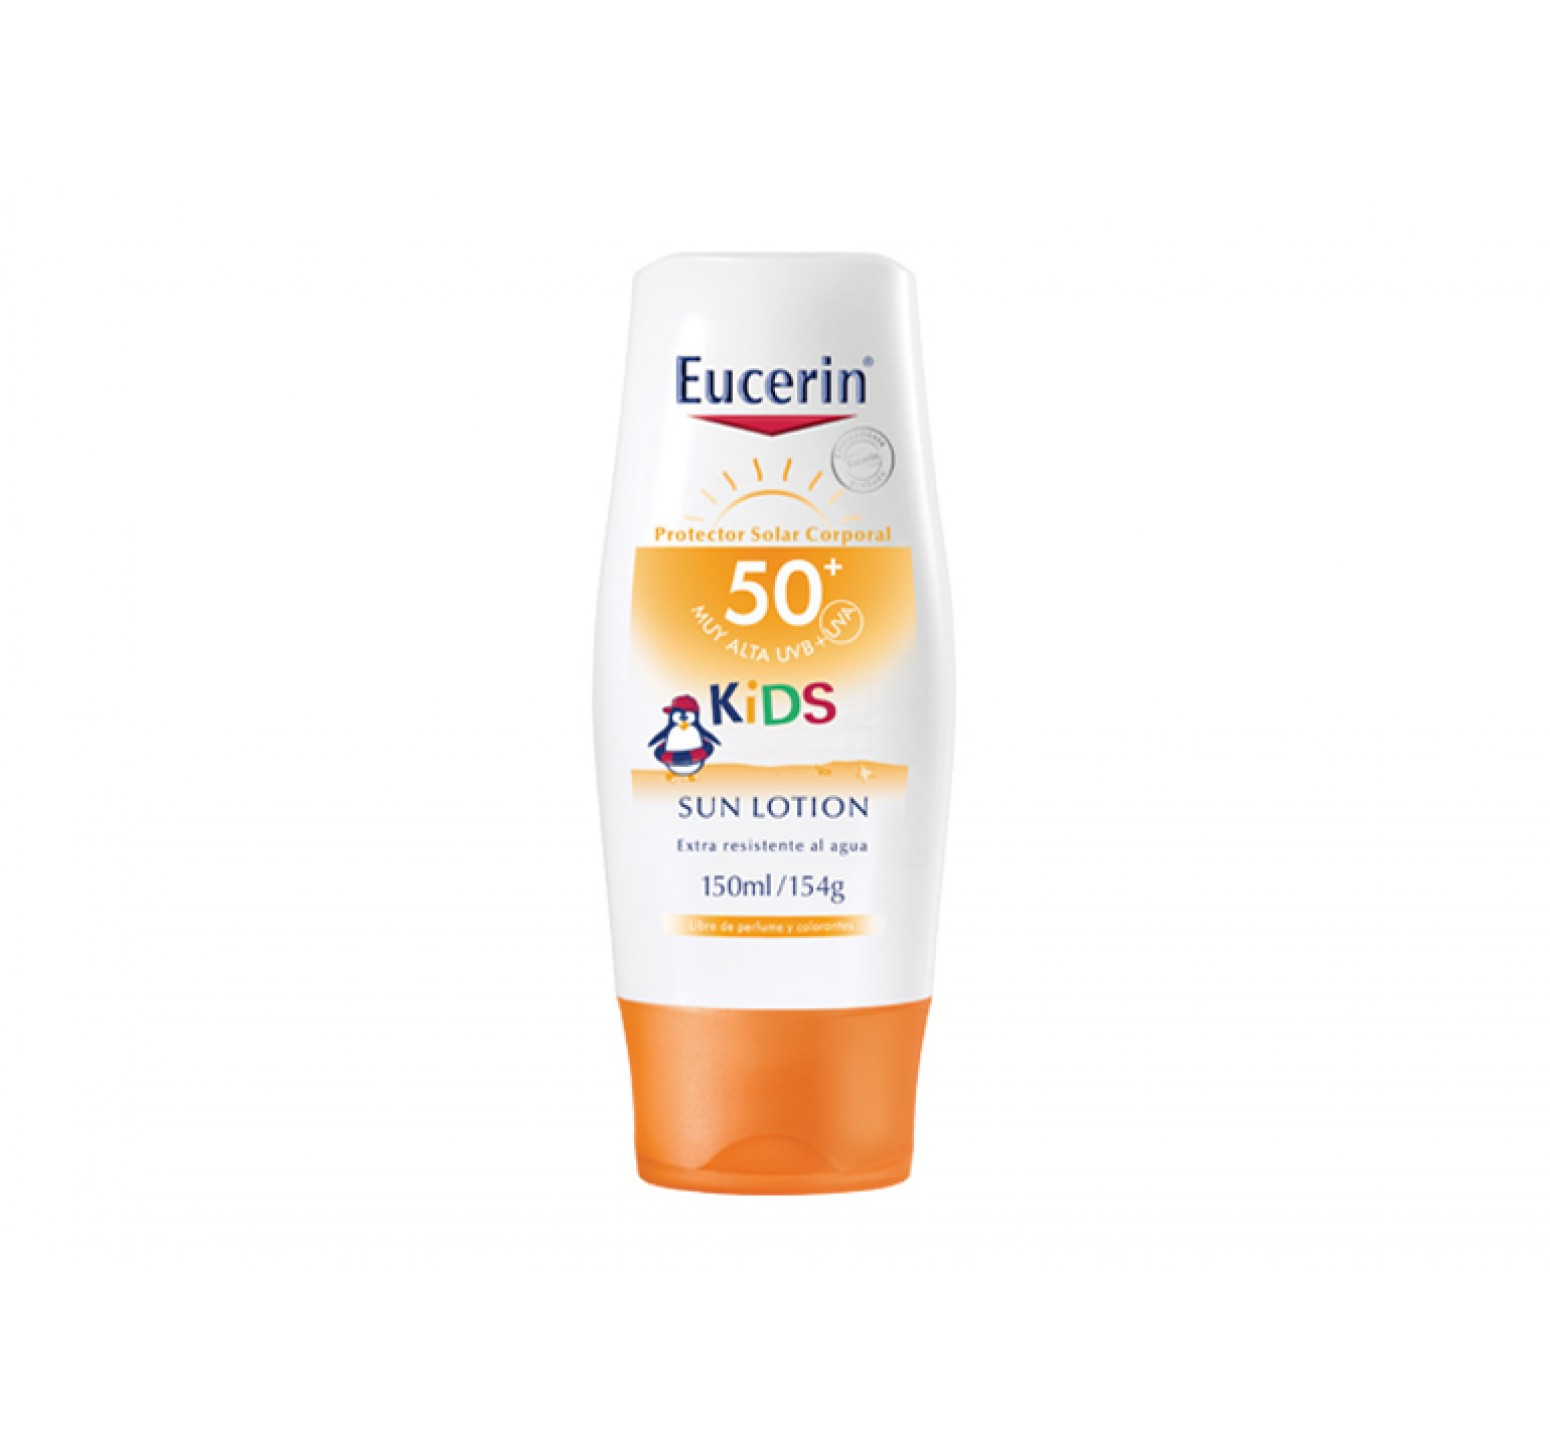 Eucerin Kids protector solar corporal FPS 50+ (150ml)